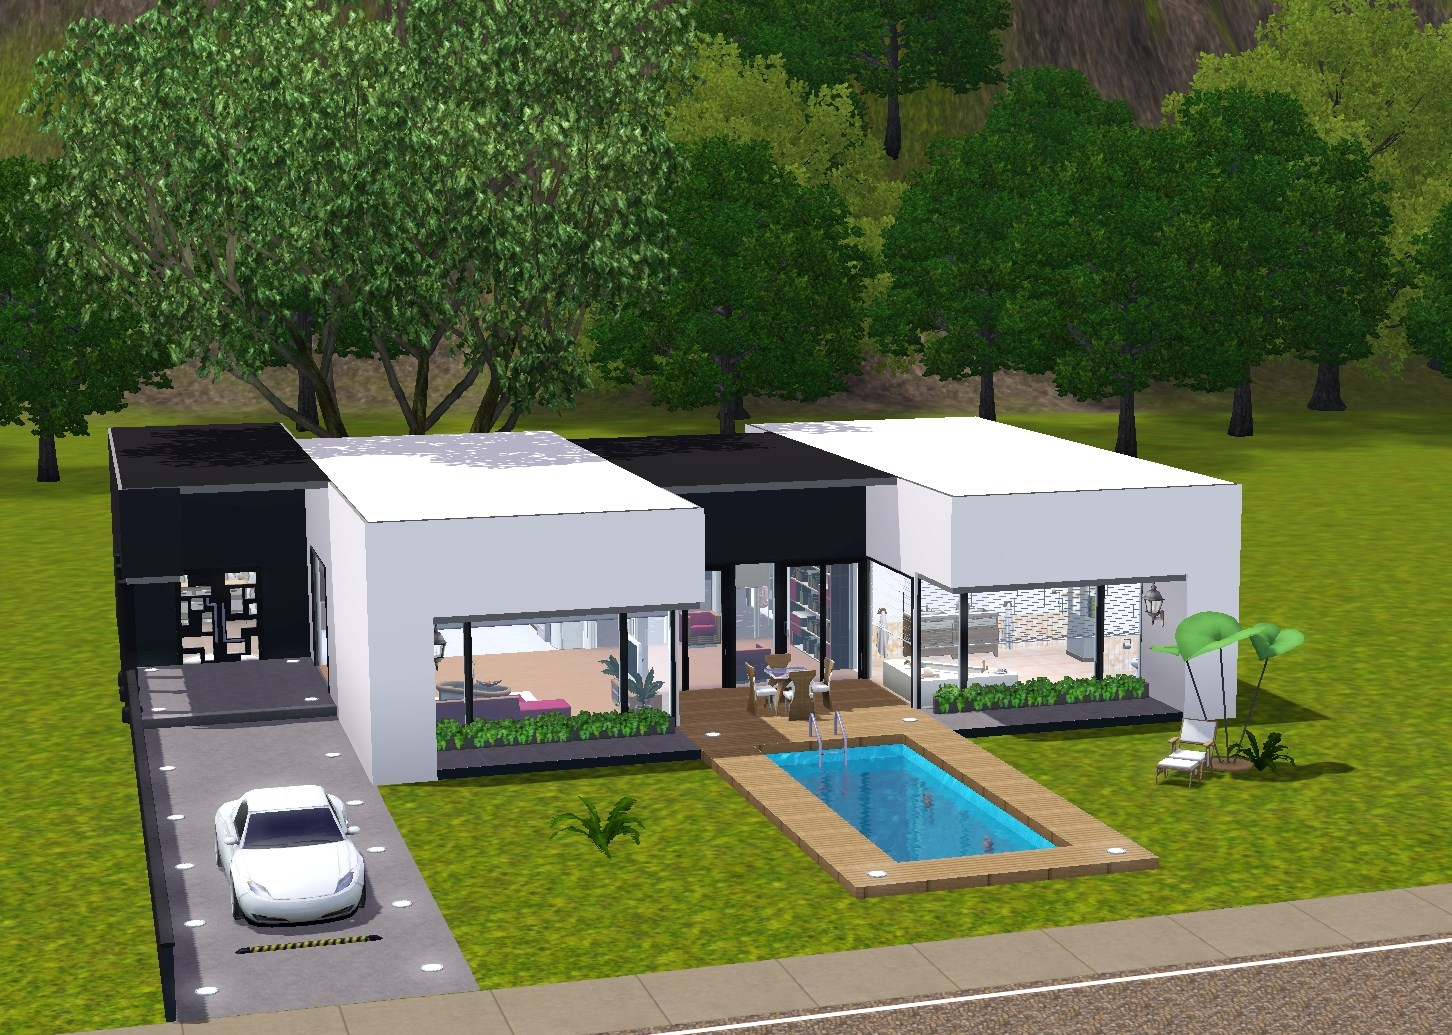 19 sims 3 blog modern bungalow 1 Modern small bungalow designs